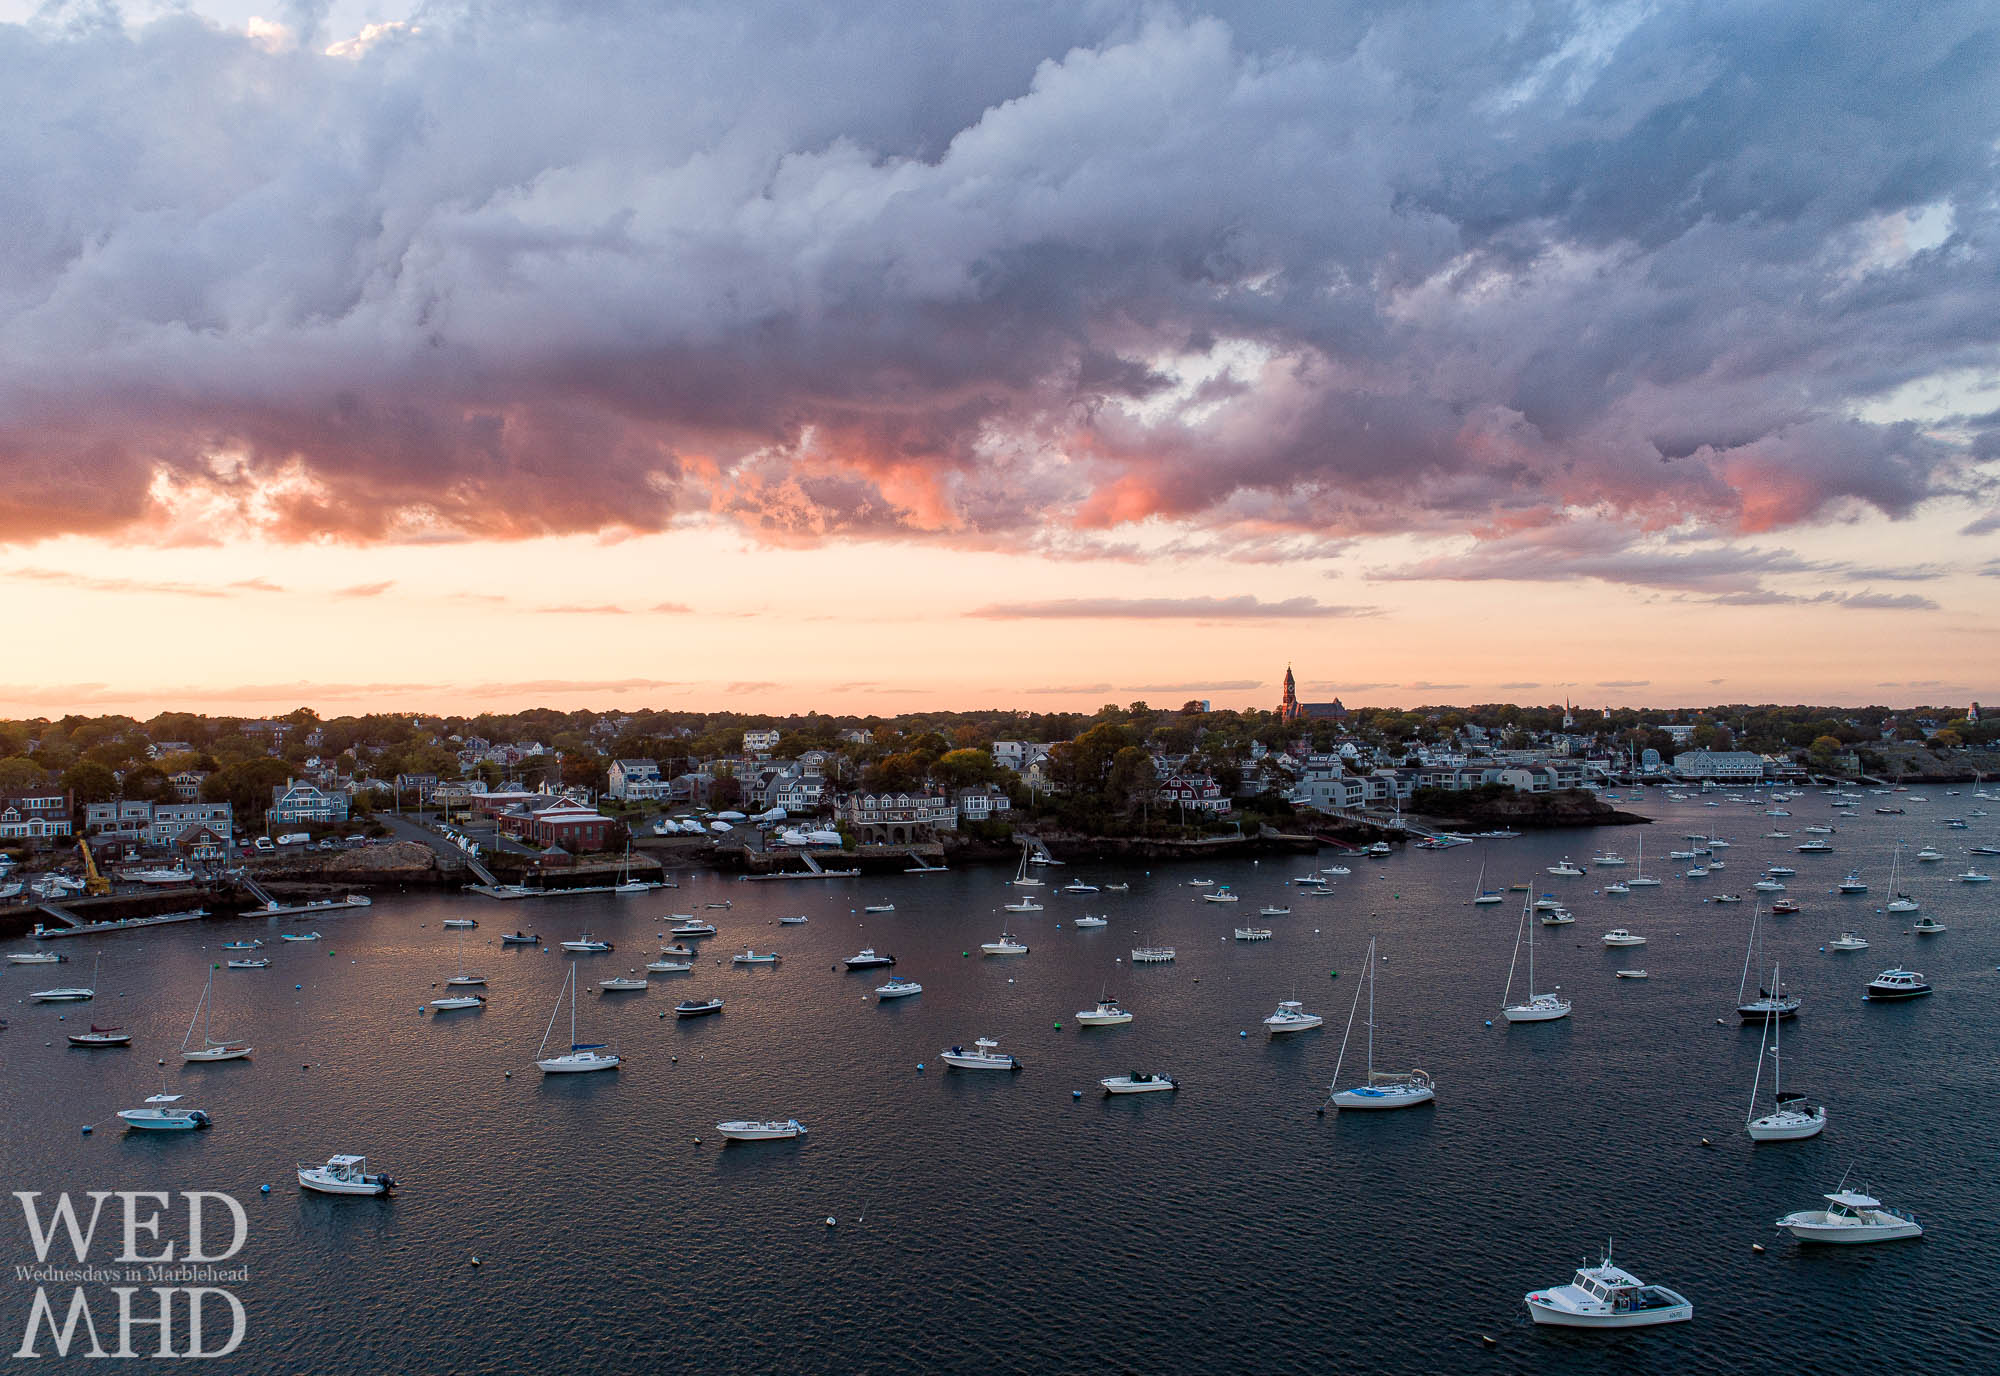 Sunset takes shape on an October sky as seen from the vantage point of an aerial drone capturing the feeling of fall over the harbor